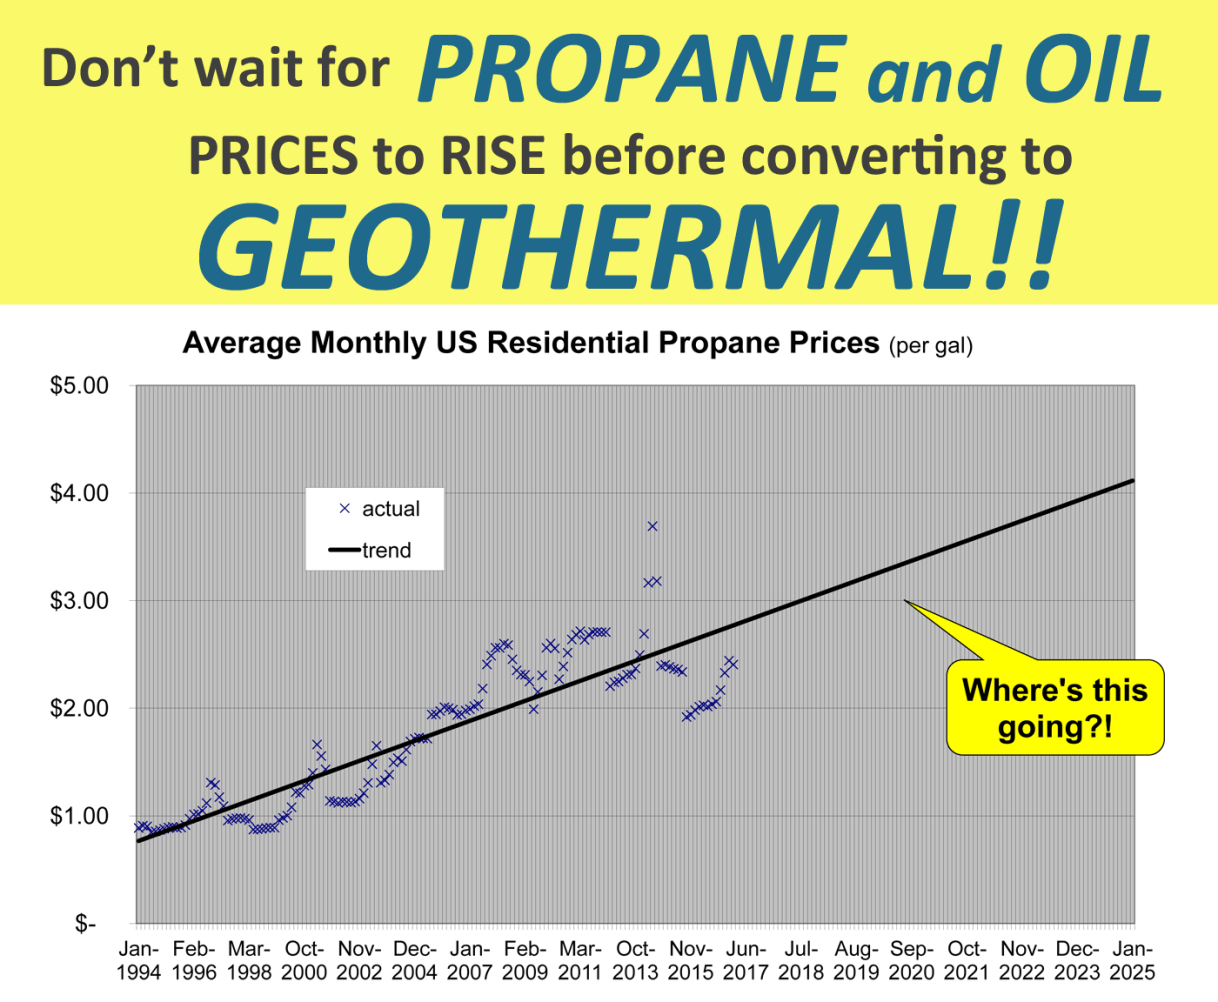 Geothermal Net Savings